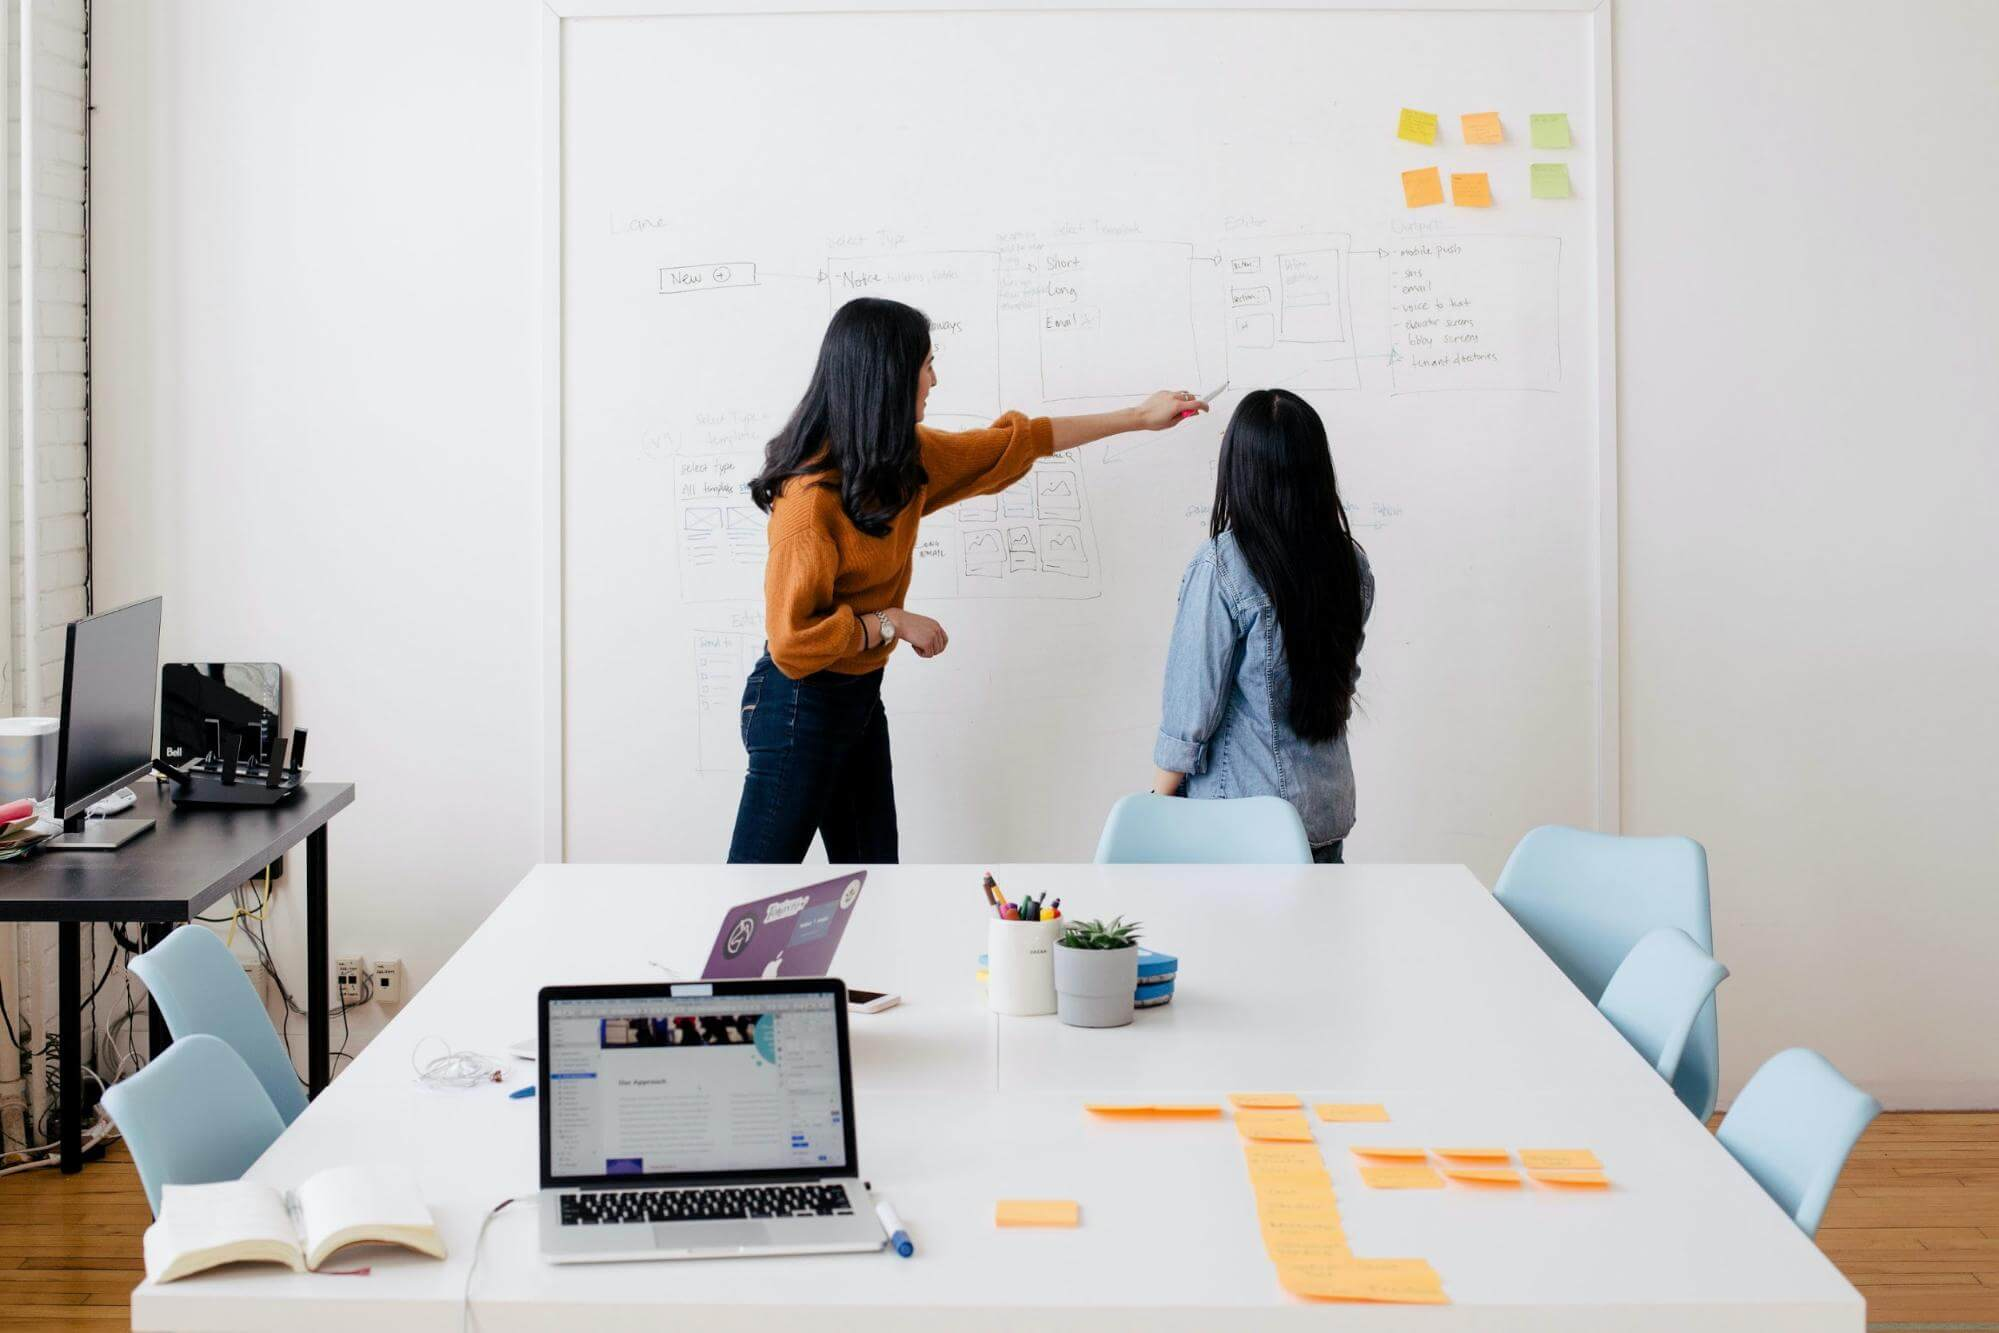 understanding your client in a meeting room pointing at a whiteboard